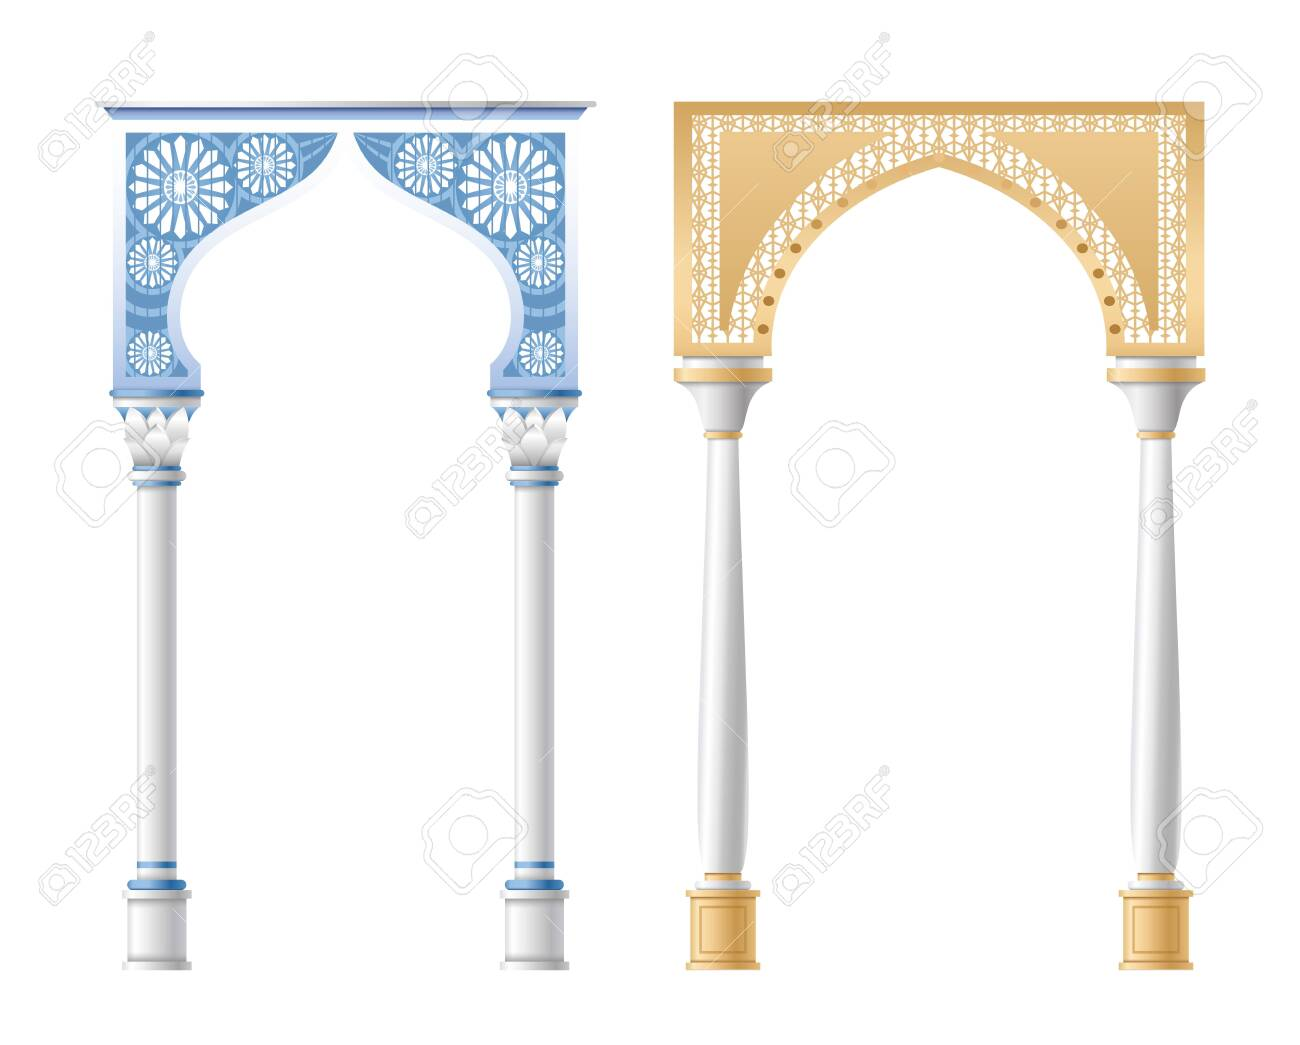 Vector illustration of architectural columns, pillars and arches isolated on white background. - 158435579